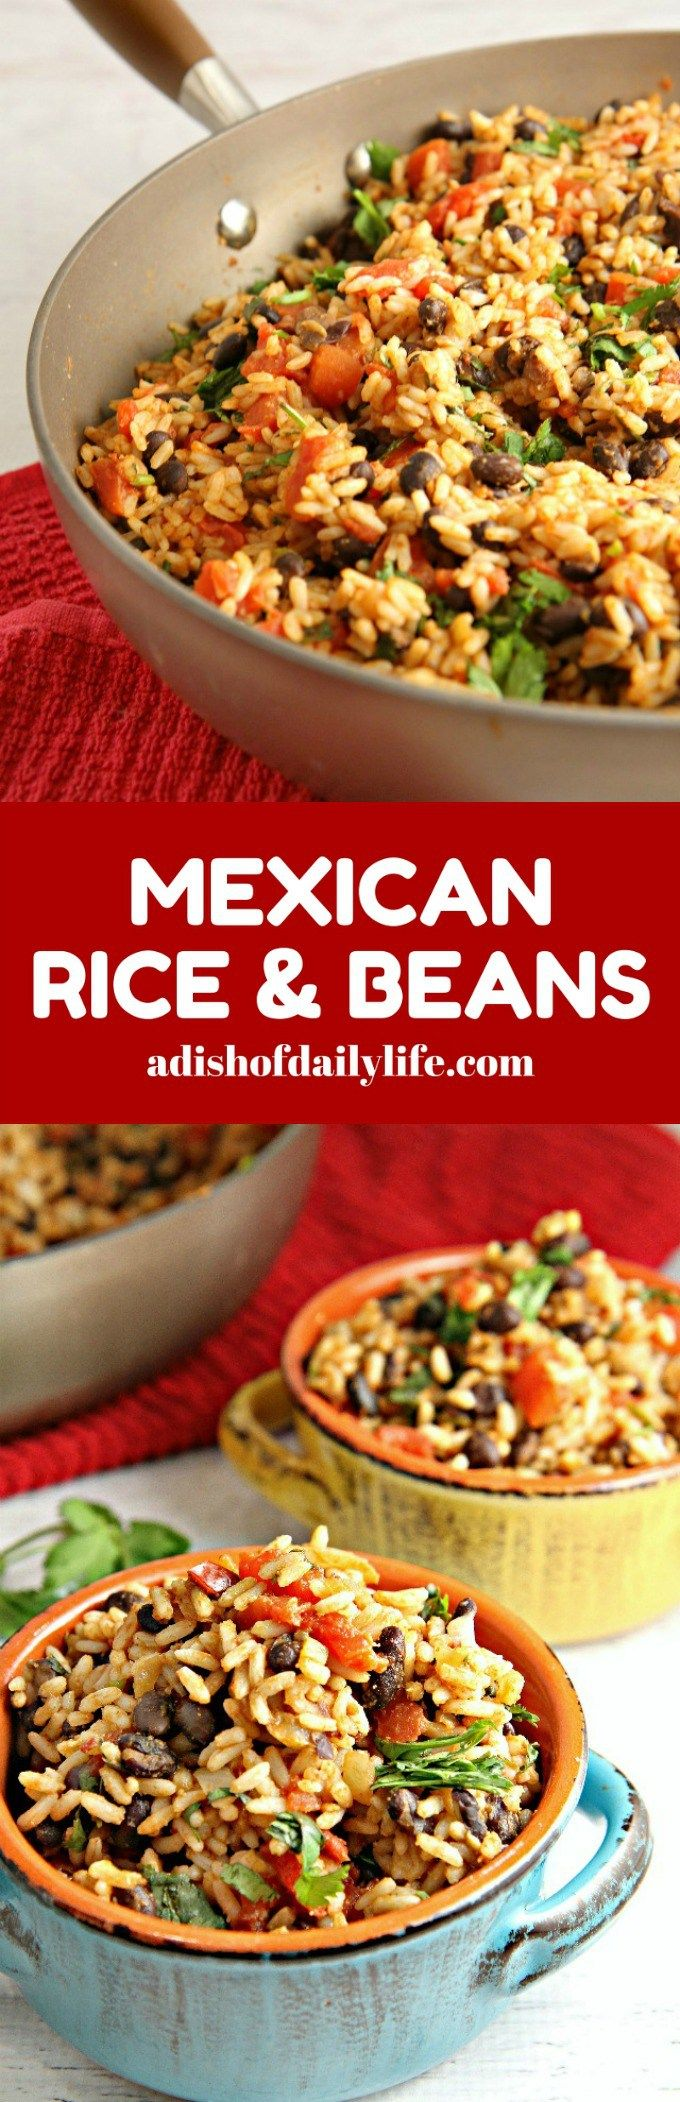 Mexican Rice and Beans...an easy versatile vegetarian dish! Use it as a side dish for Mexican night, use the leftovers as a filling for burritos along with chicken or beef, or add cheese and turn it i